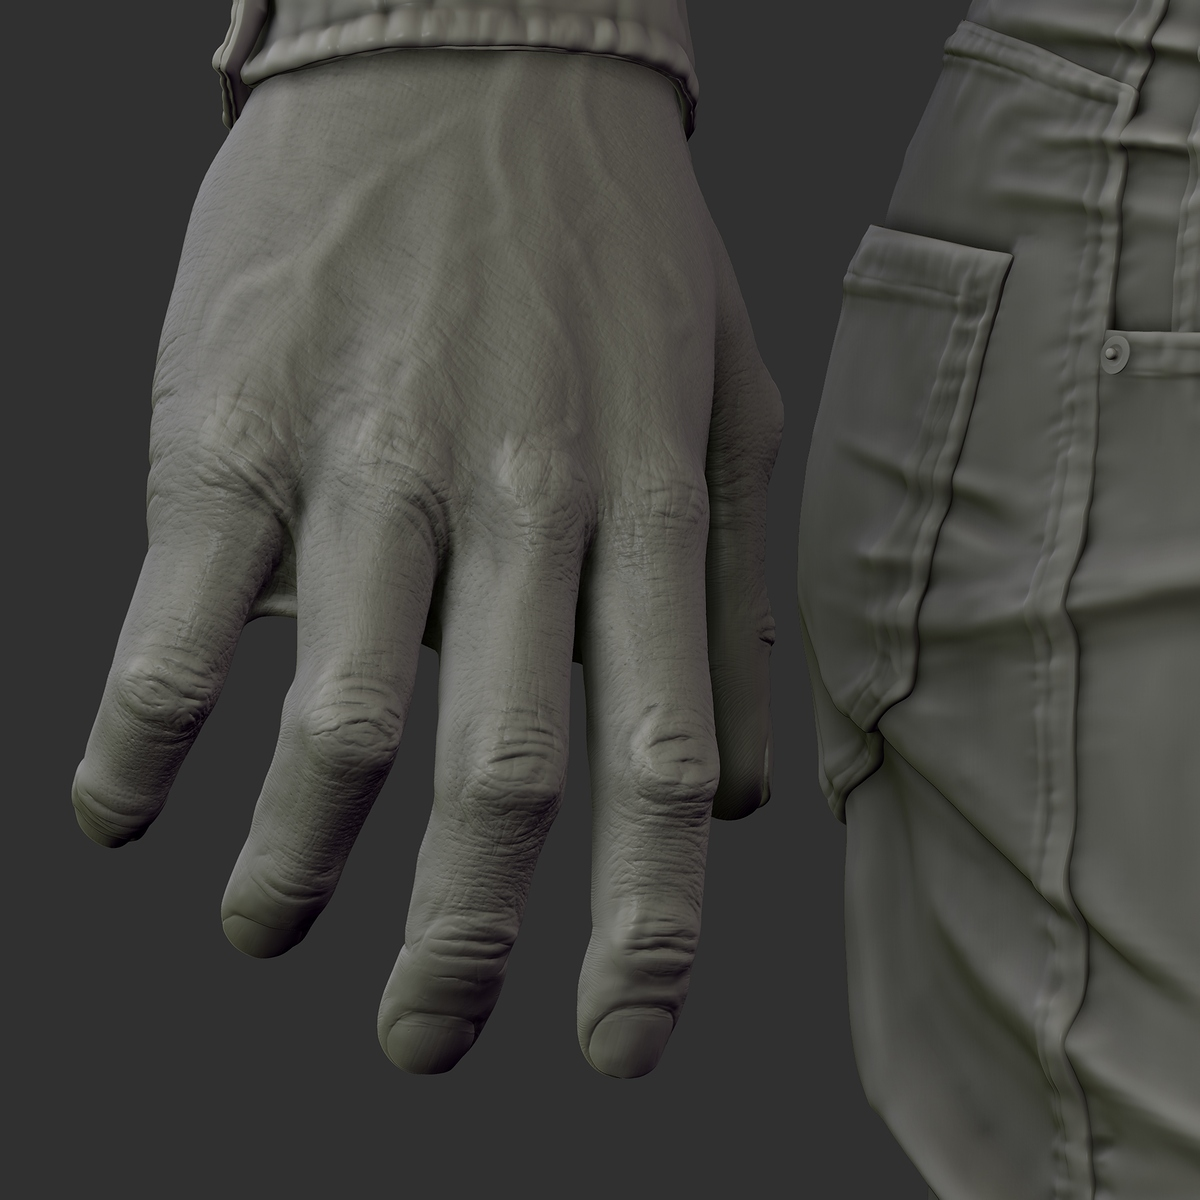 ZBrush Document10